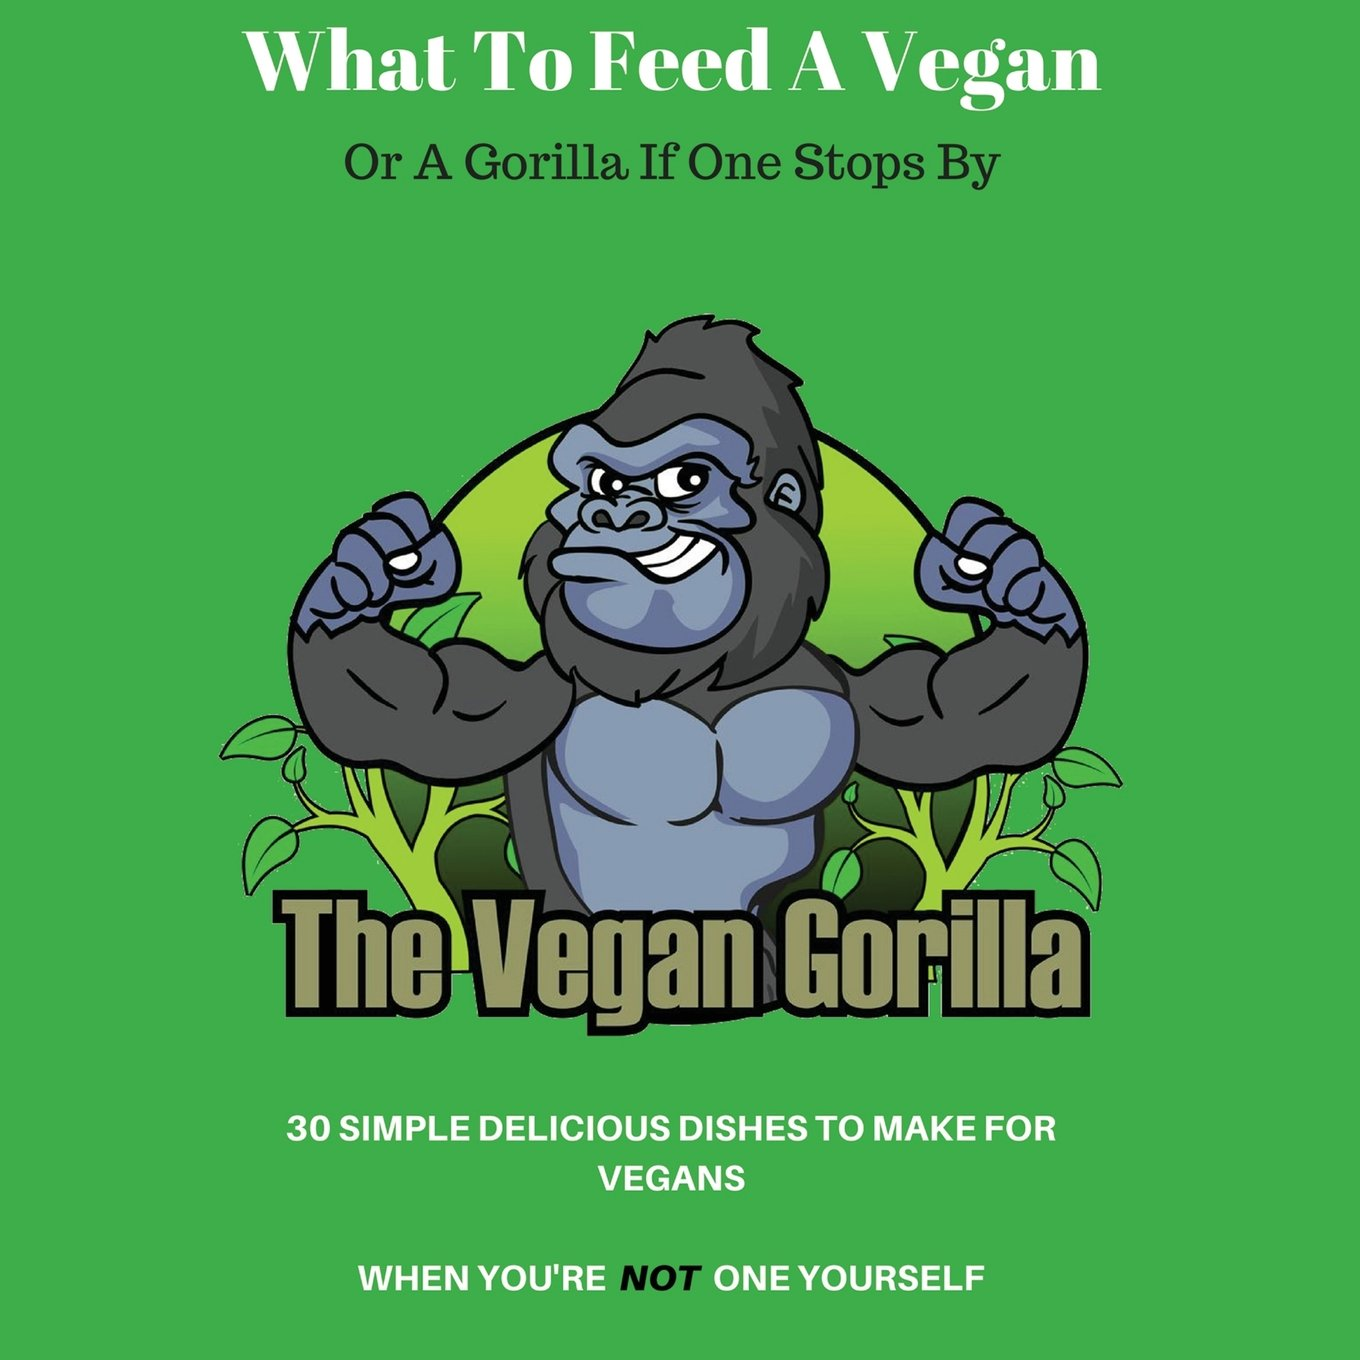 What to Feed a Vegan: Or a Gorilla If One Stops by